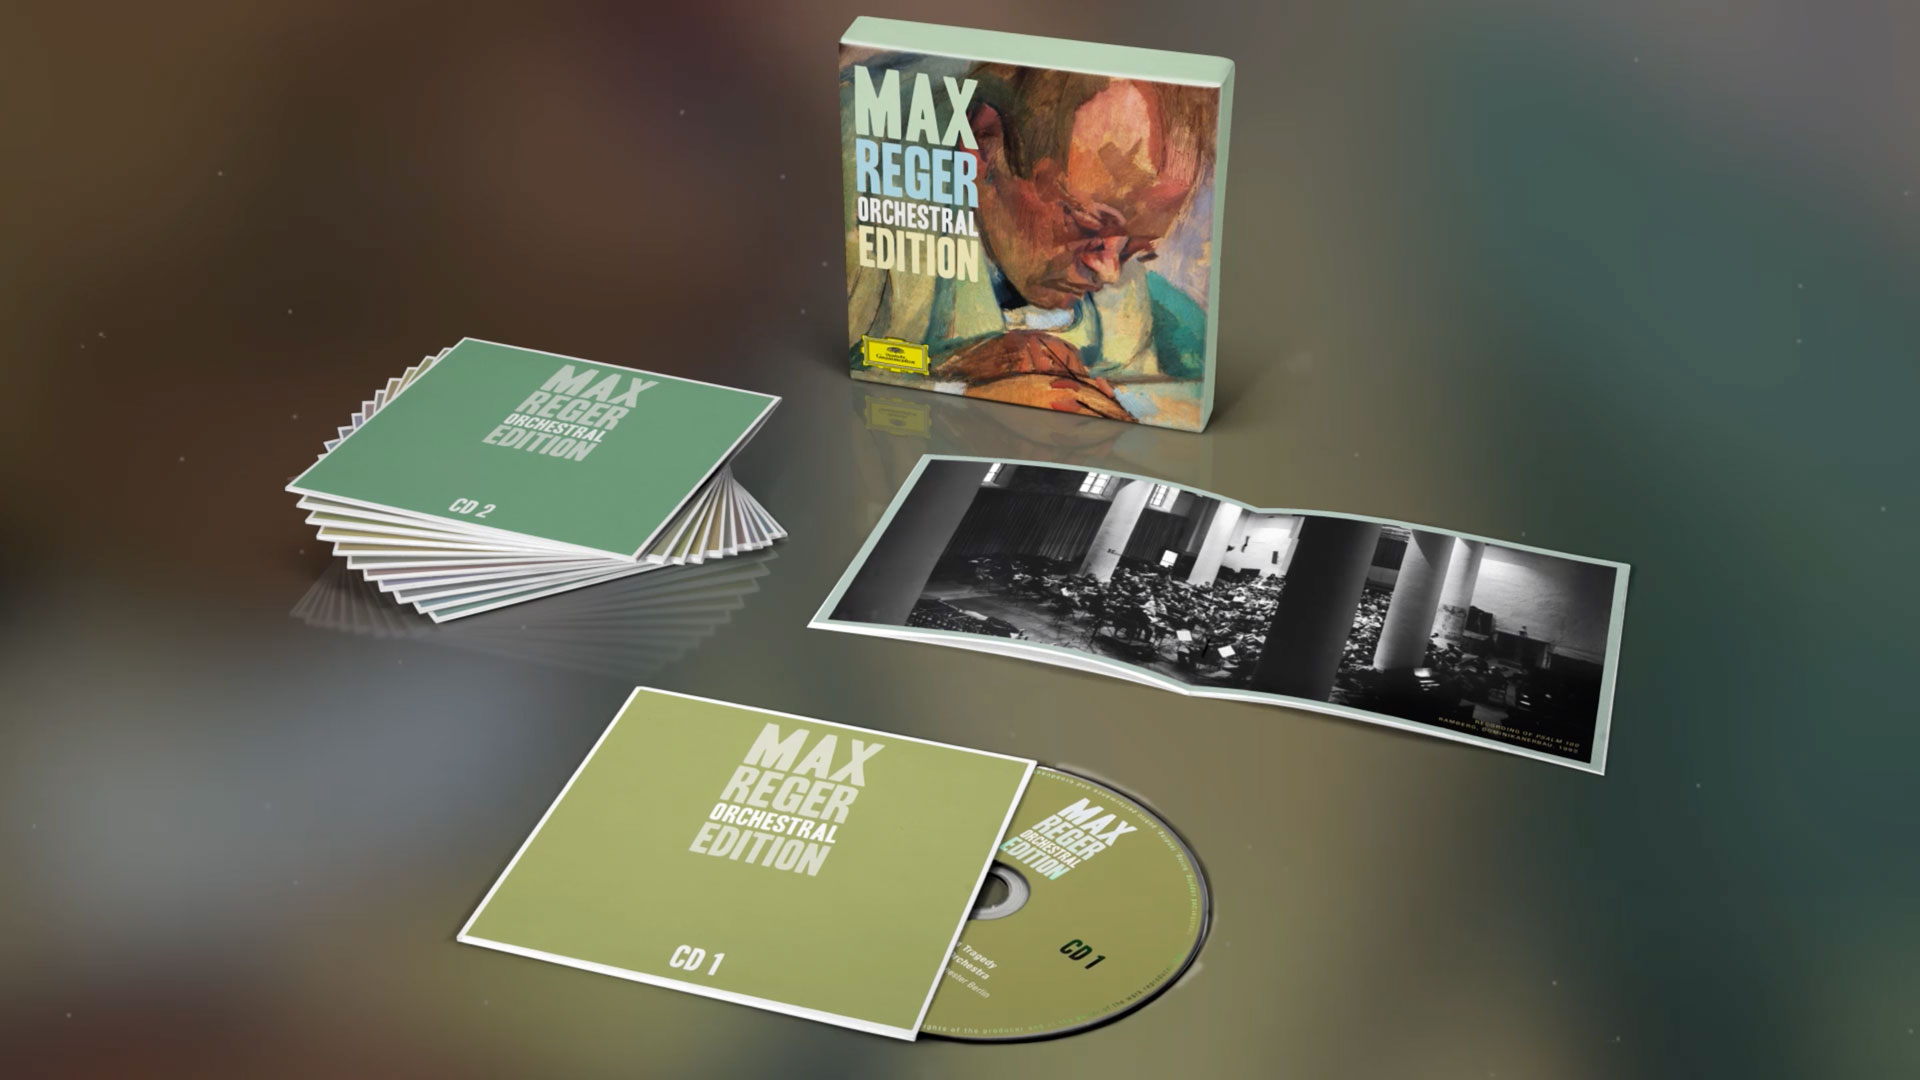 Deutsche Grammophon published a special edition of the German composer Max Reger.